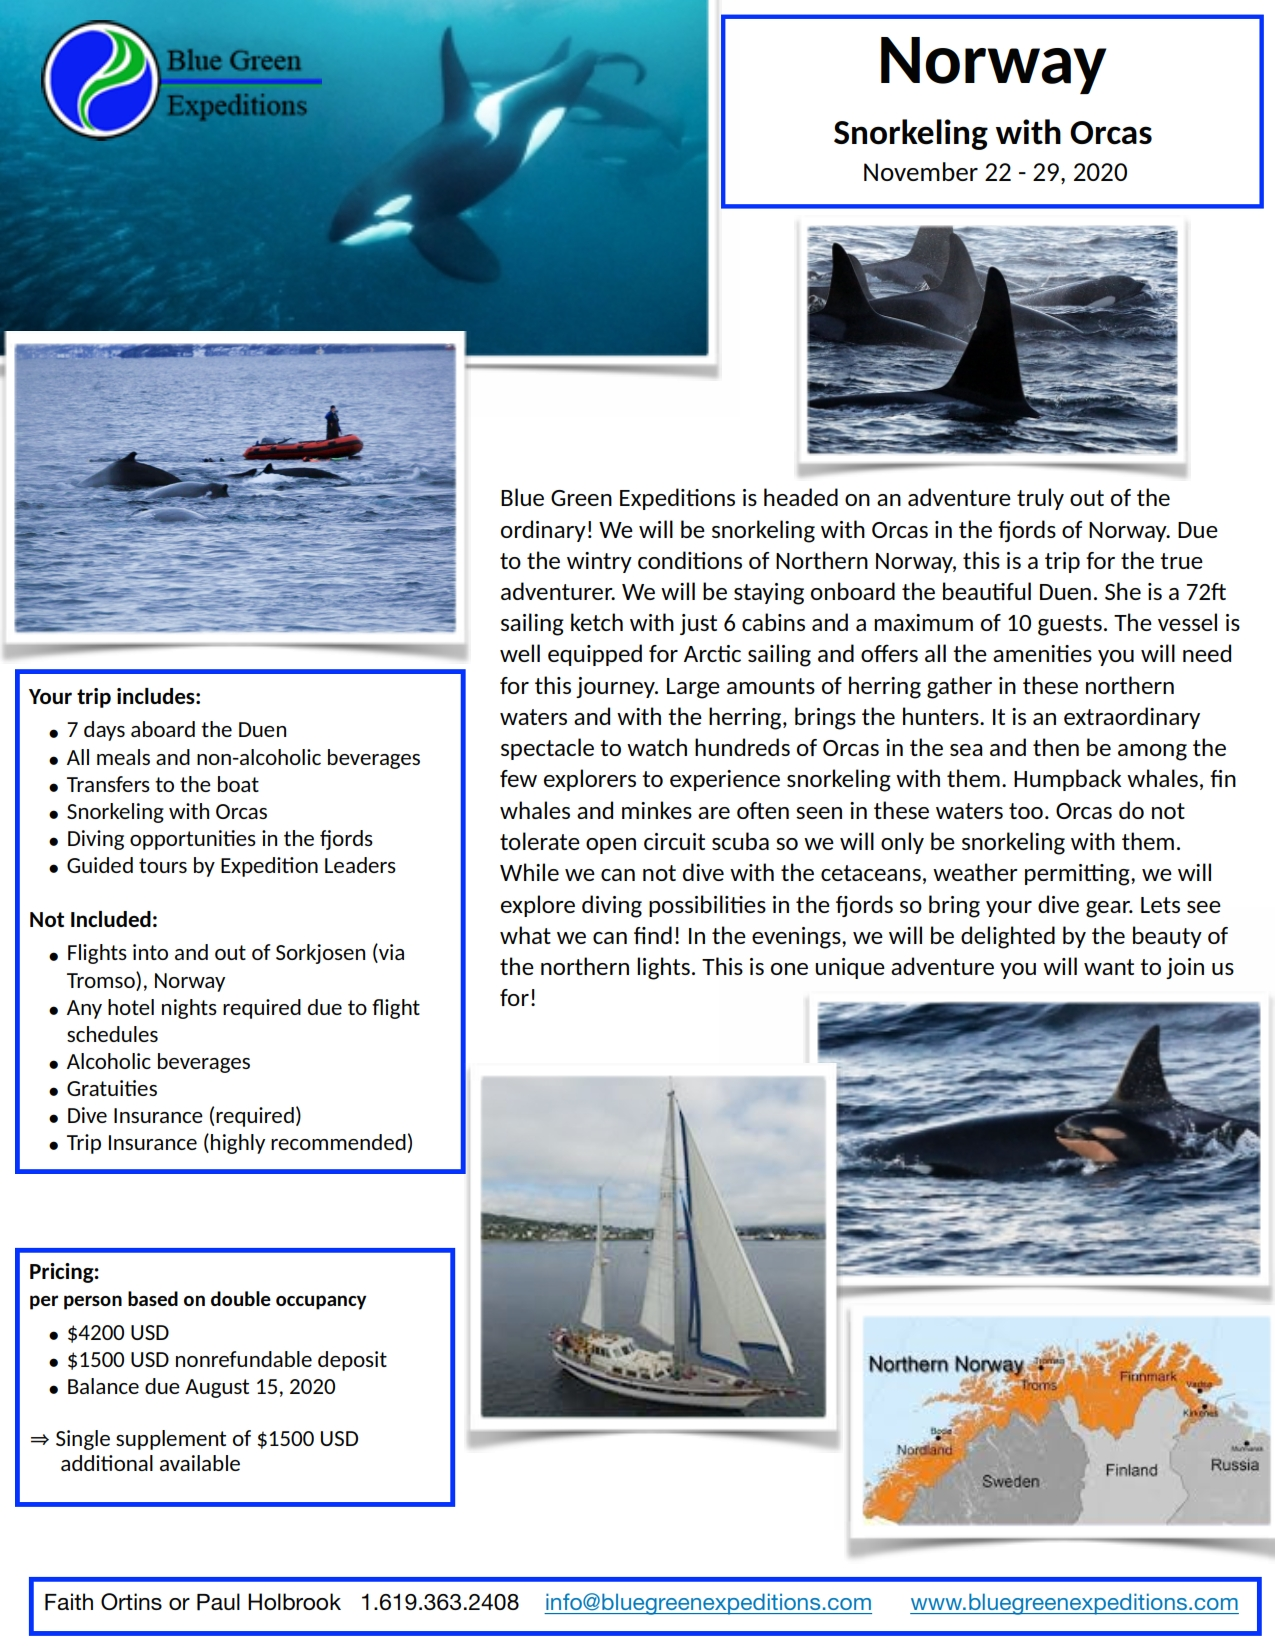 Norway Expedition, November 22 - 29, 2020. Expedition description and pricing. PDF flyer contains the same information.